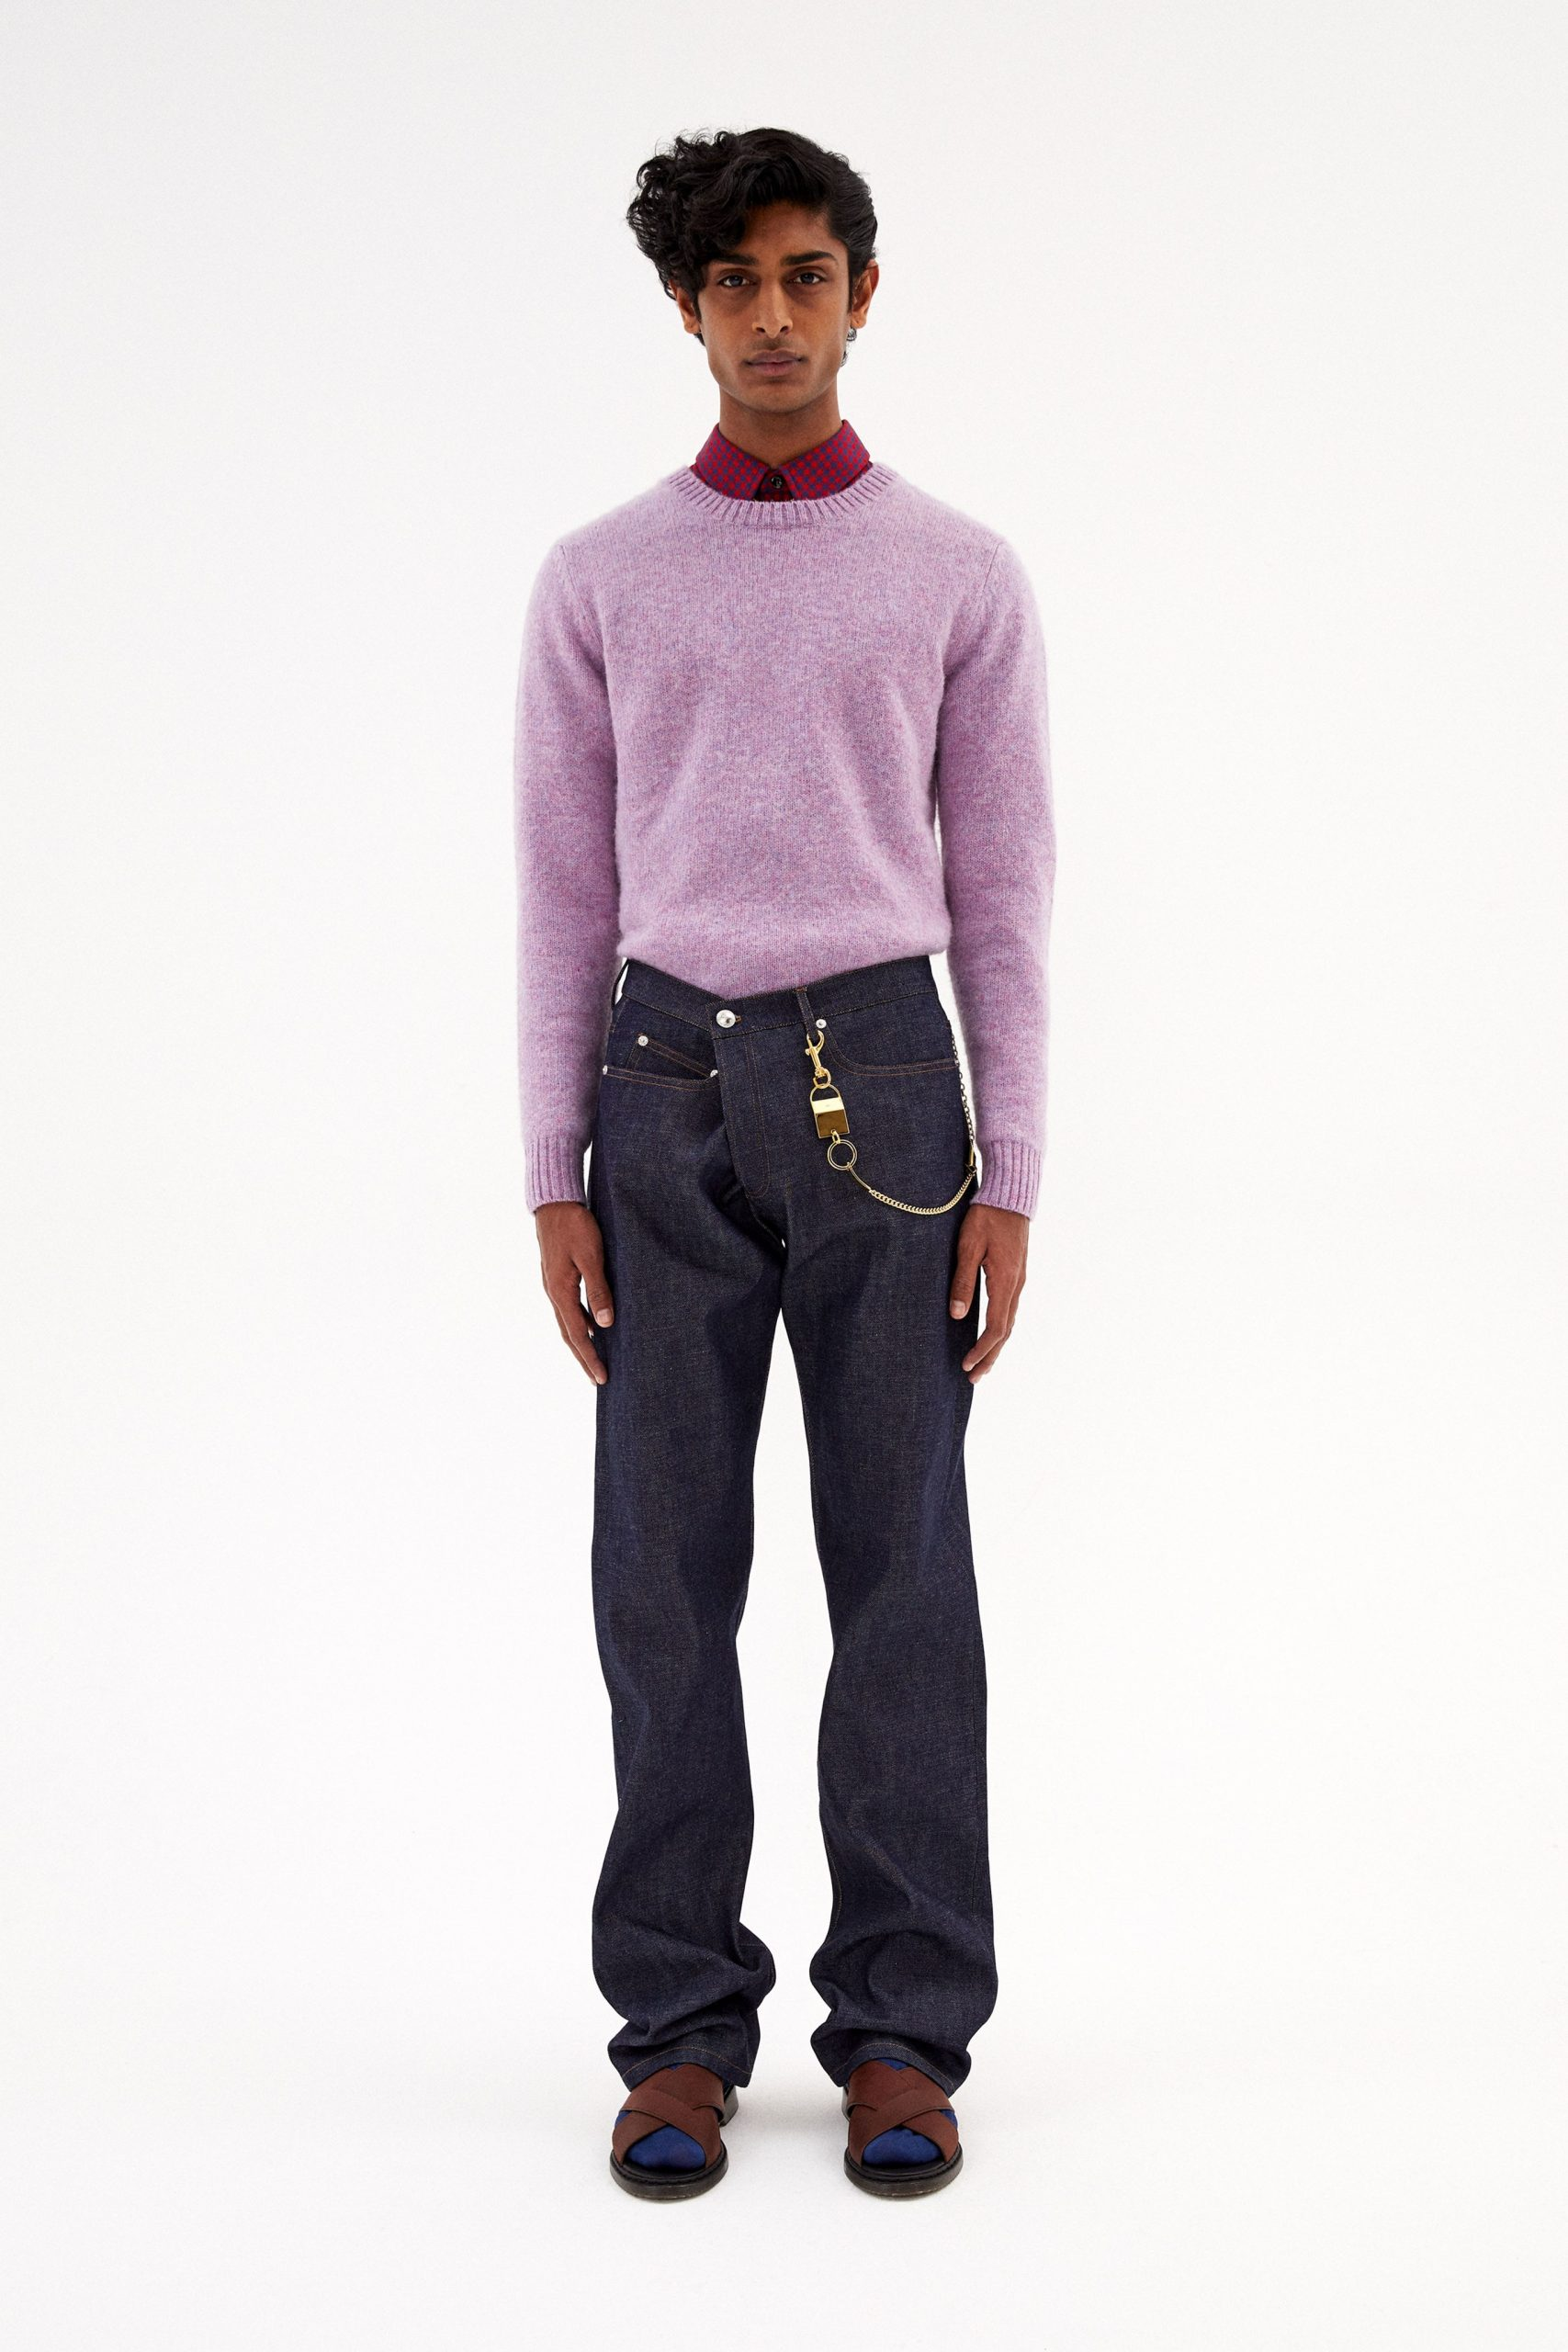 APC Fall 2020 Fashion Collection Photos